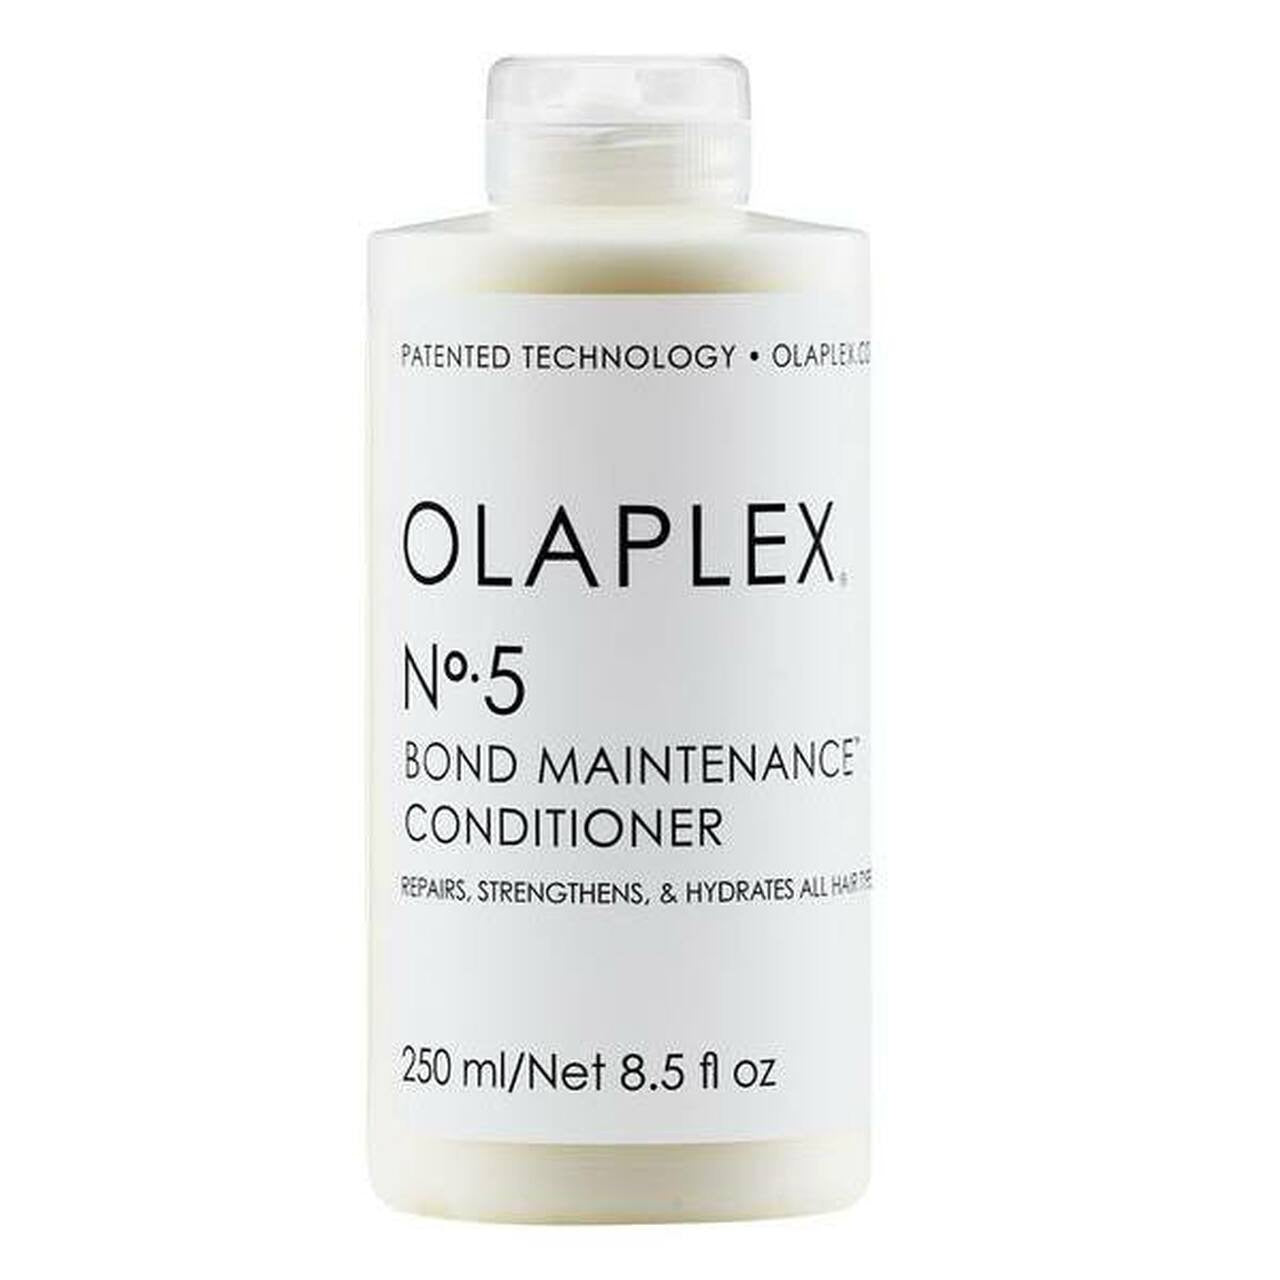 Olaplex No 5 Conditioner